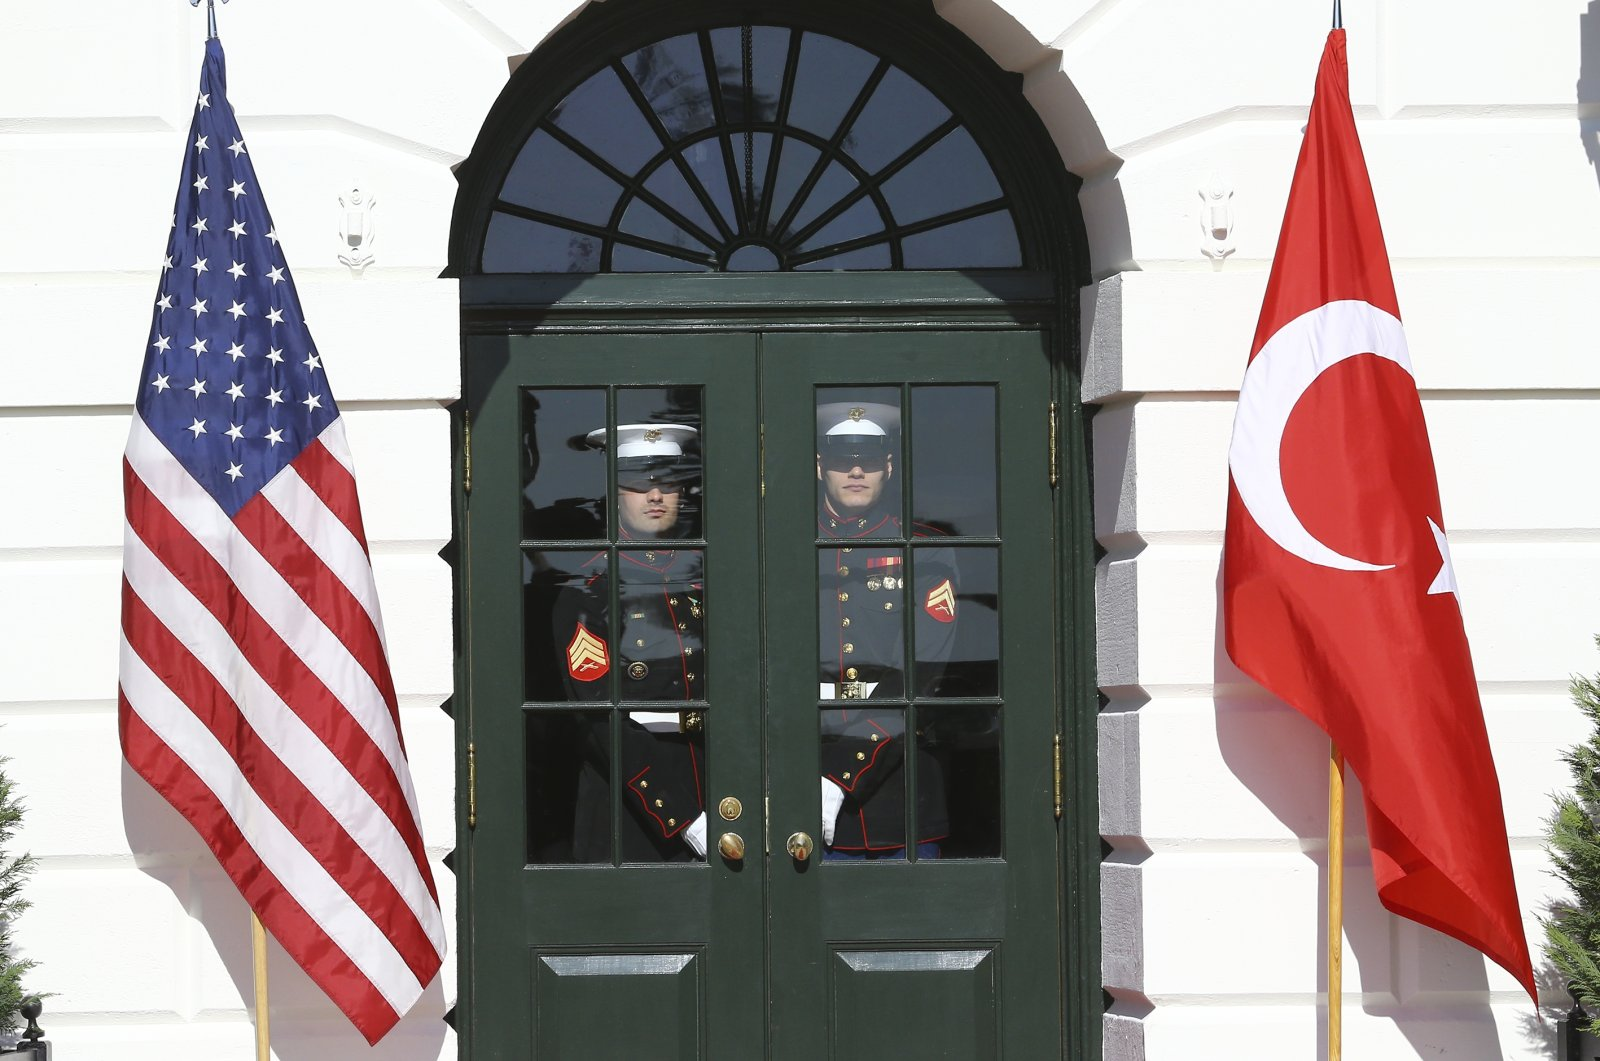 Two U.S. officers stand behind a closed door as part of preparations for the meeting between President Recep Tayyip Erdoğan and U.S. President Donald Trump at the White House, Washington, D.C., Nov. 13, 2019. (AA Photo)